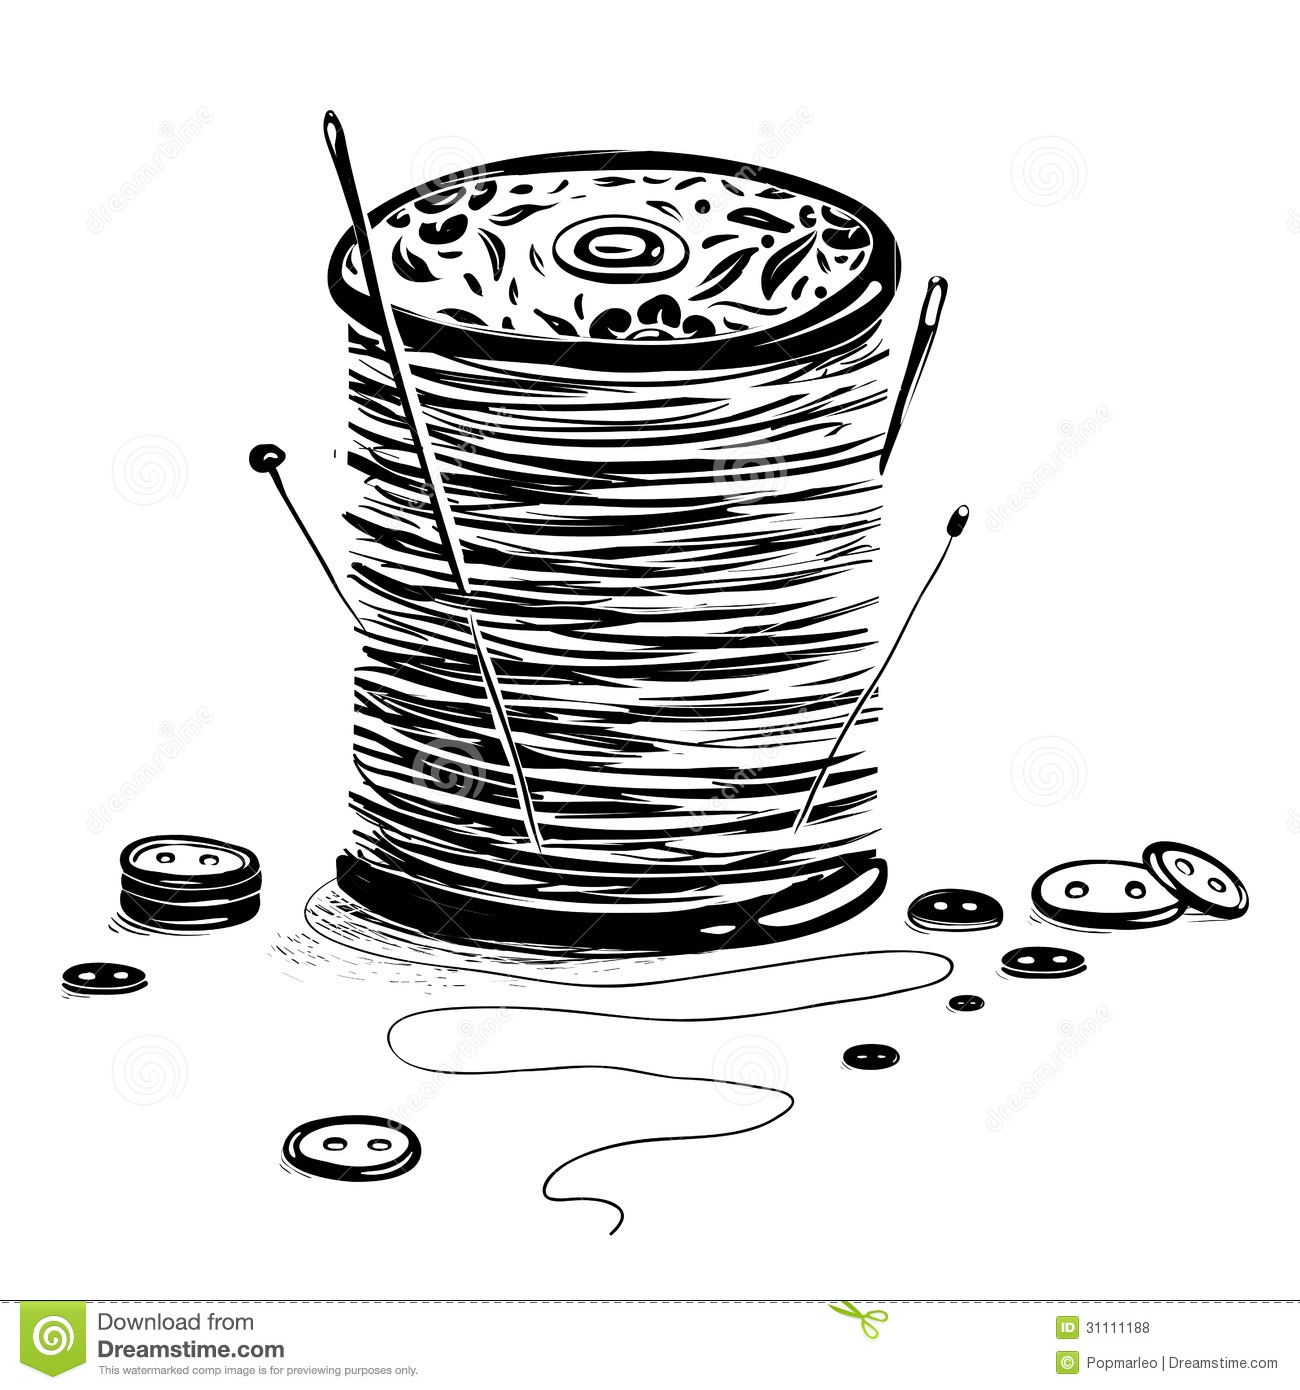 Spool Of Thread And Needles Stock Vector - Illustration of full ...